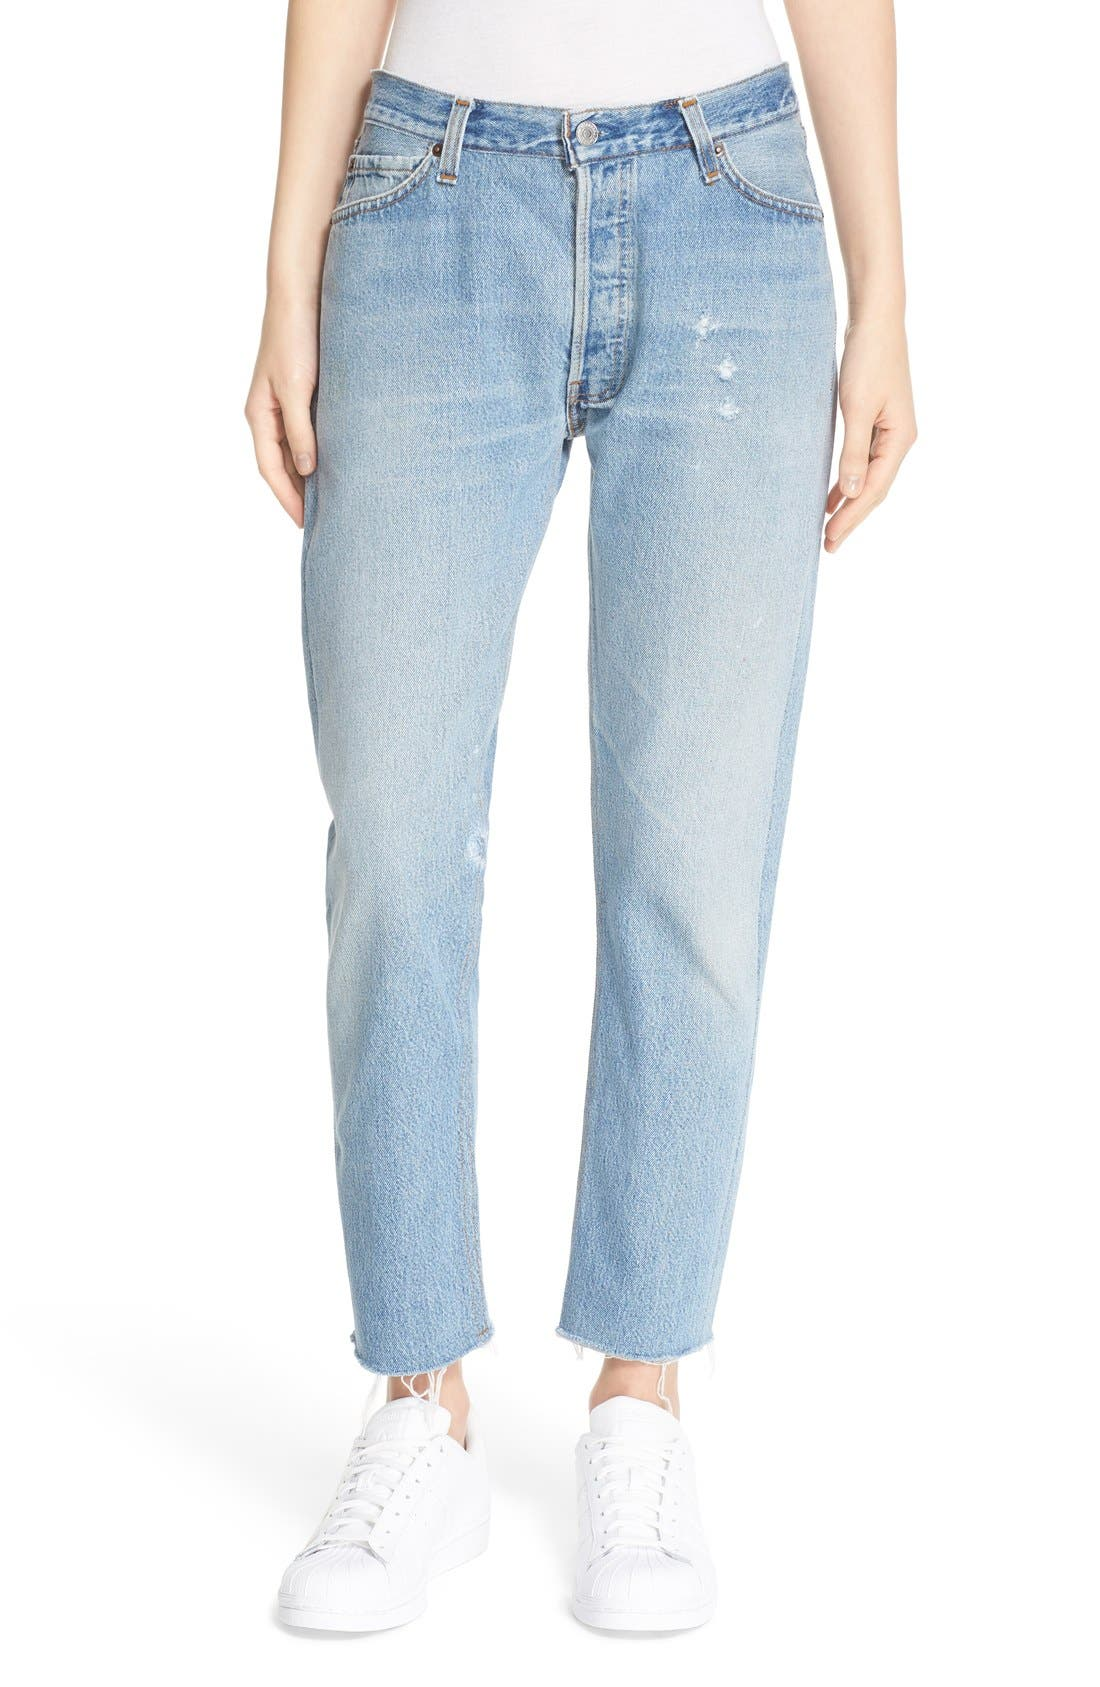 Alternate Image 1 Selected - Re/Done 'The Relaxed Crop' Reconstructed Jeans